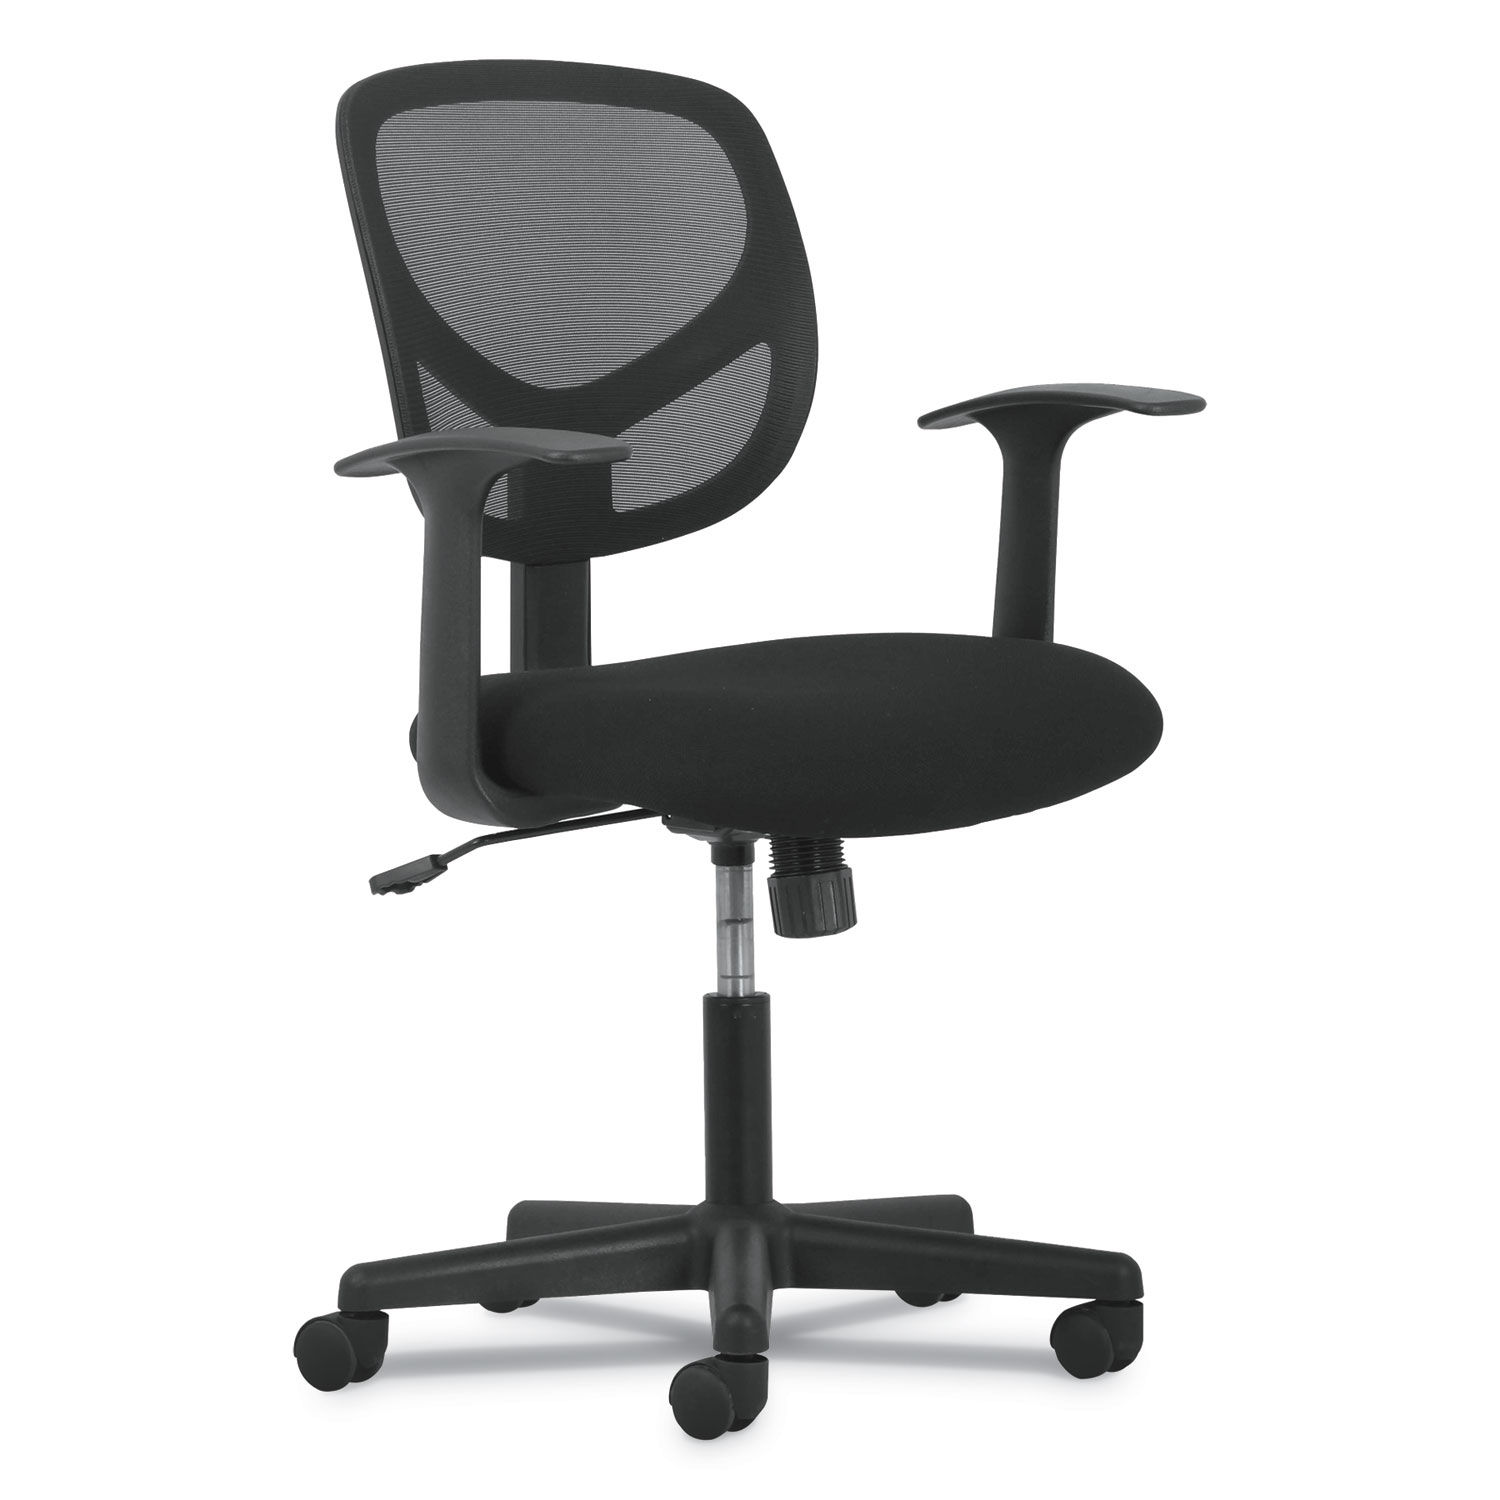 1 Oh Two Mid Back Task Chairs By Sadie Bsxvst102 Ontimesupplies Com